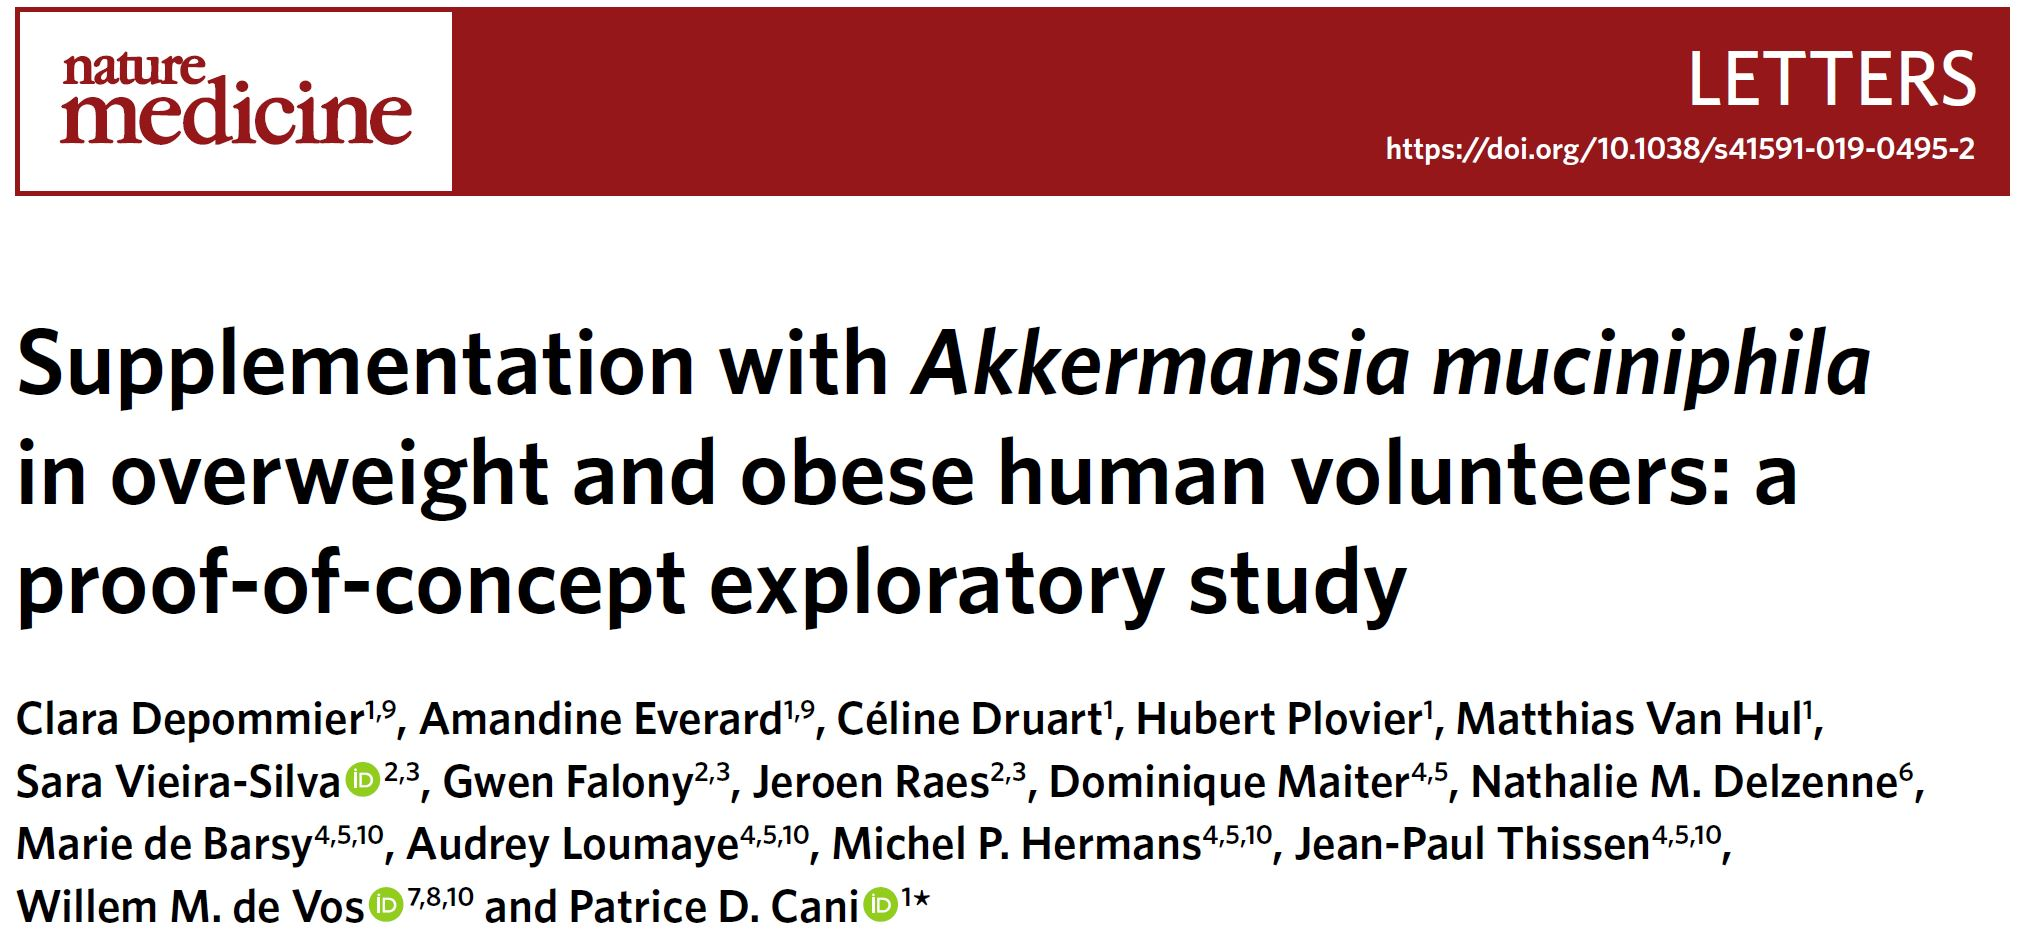 Supplementation with Akkermansia muciniphila in overweight and obese human volunteers: a proof-of-concept exploratory study